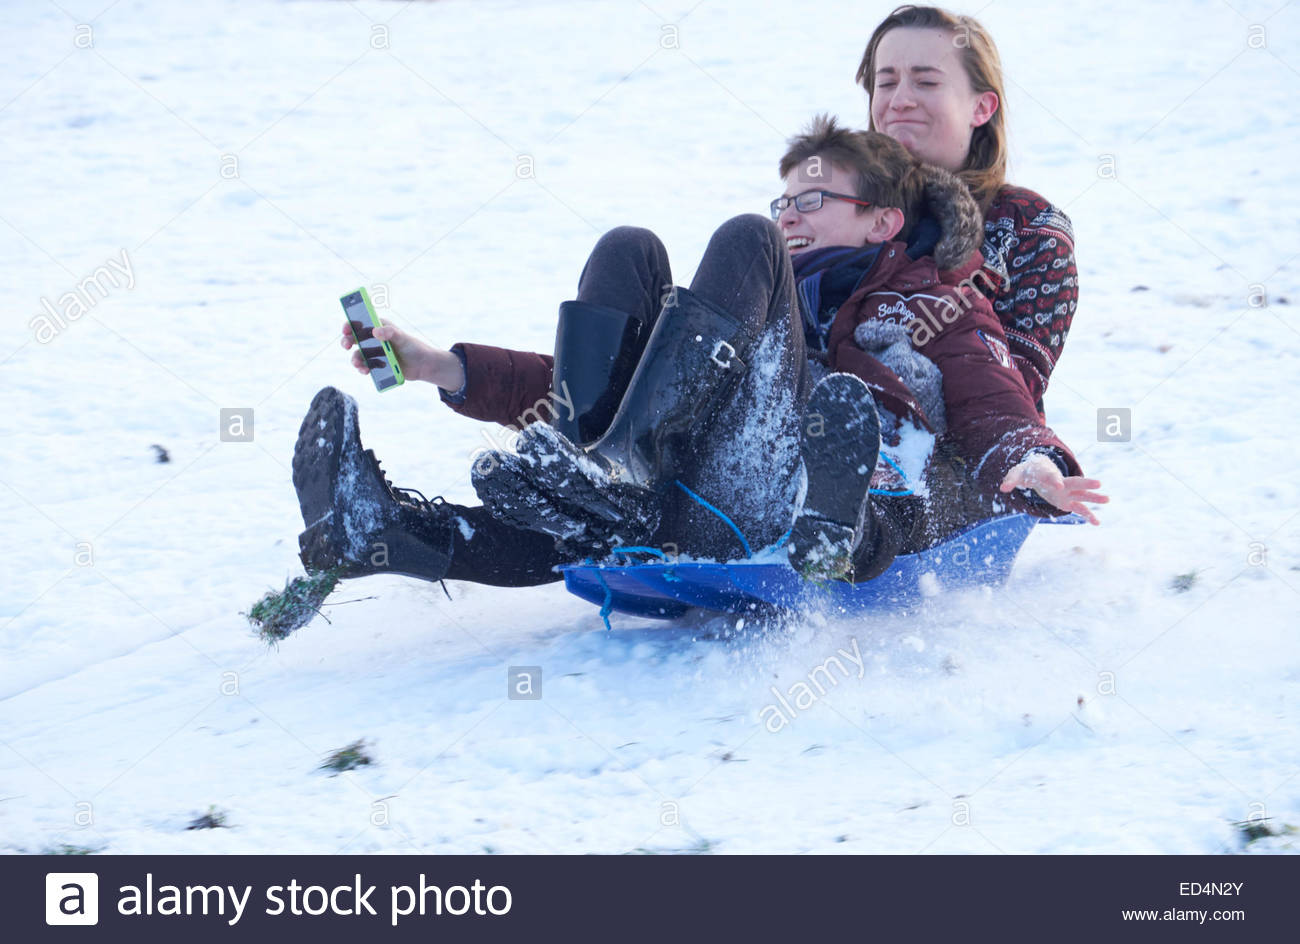 snow-fun-wollaton-park-nottingham-uk-27december-2014-all-ages-turn-ED4N2Y.jpg